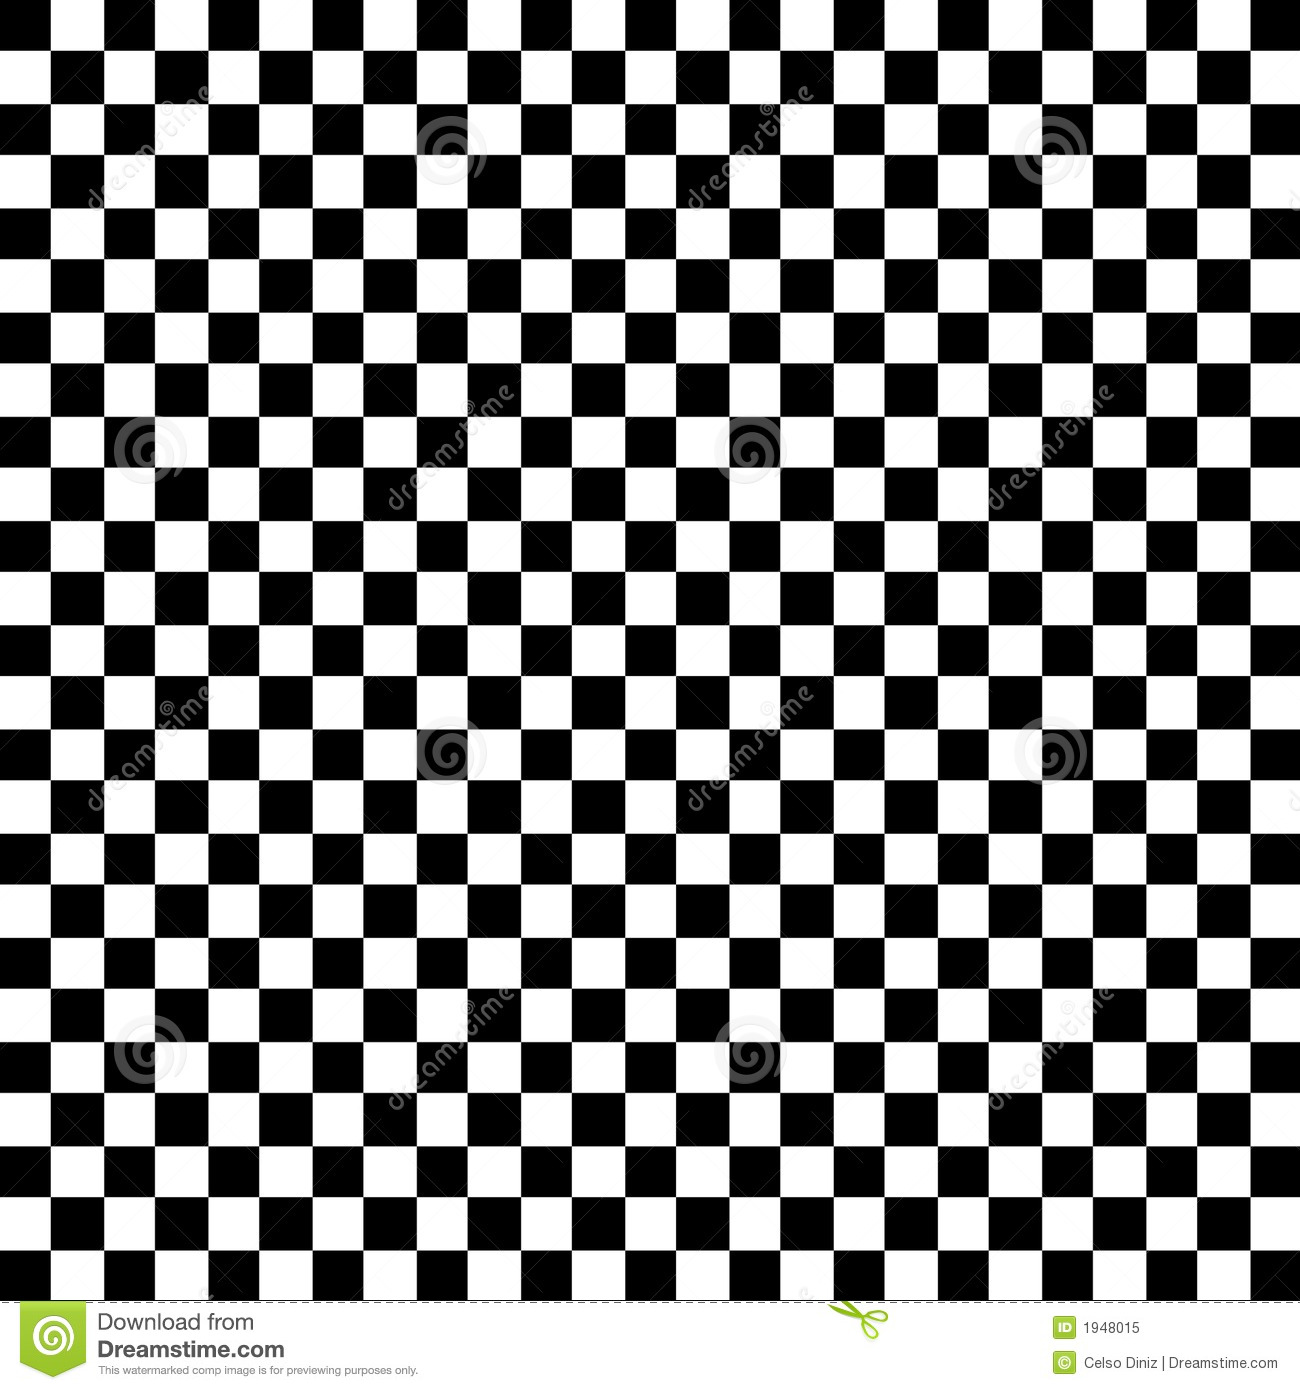 Disney Art Of Animation Floor Plan Black And White Check Pattern Royalty Free Stock Photo